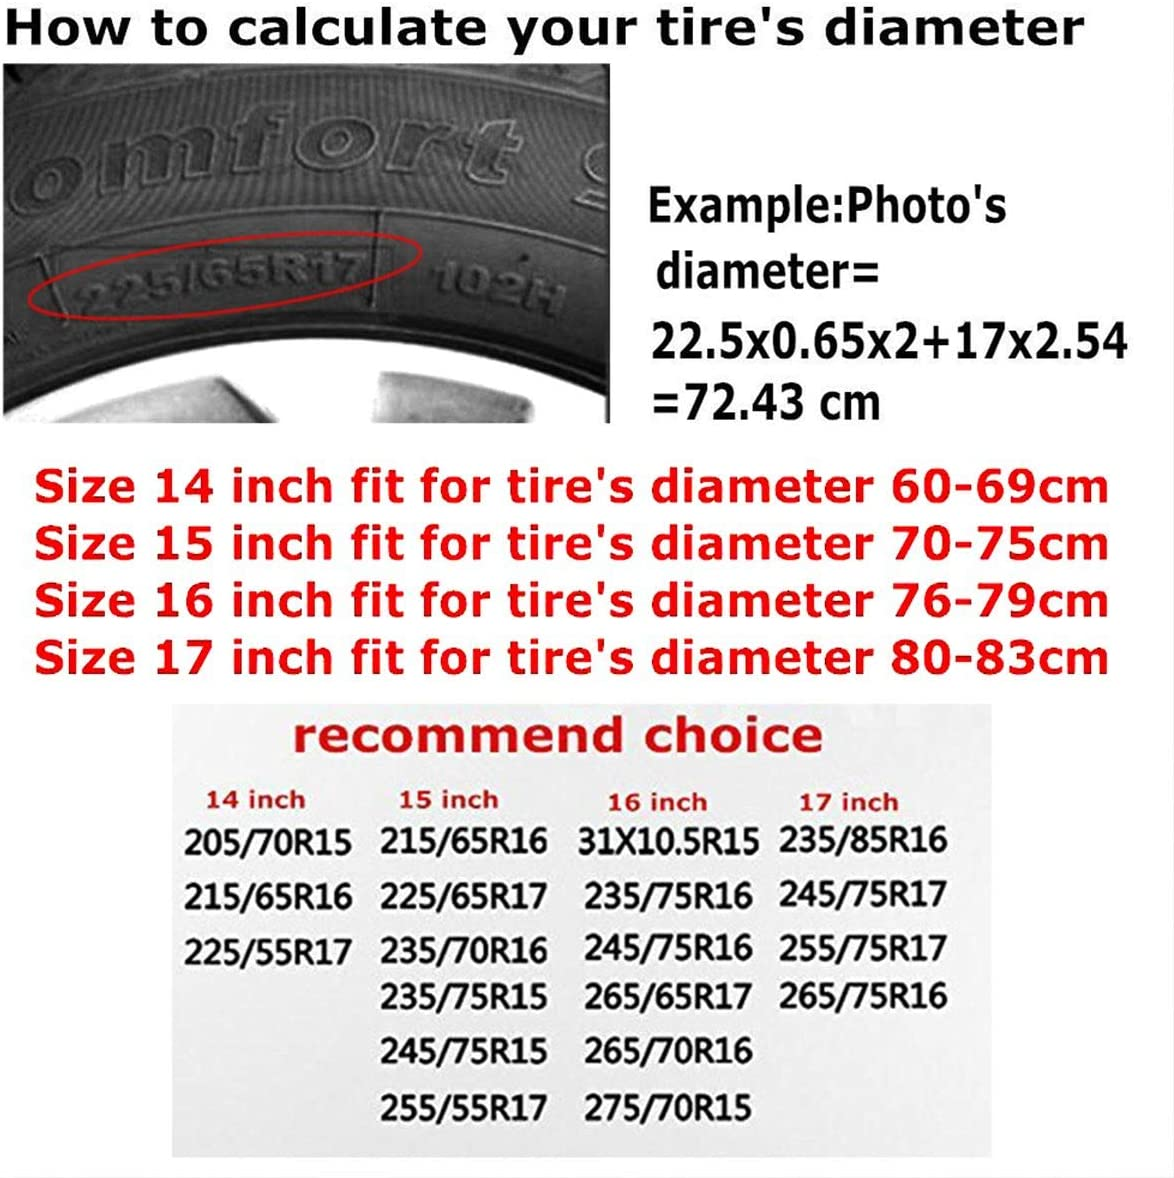 Delerain Skull Spare Tire Covers for RV Jeep Trailer SUV Truck and Many Vehicle 14 Inch for Diameter 23-27 Wheel Covers Sun Protector Waterproof,